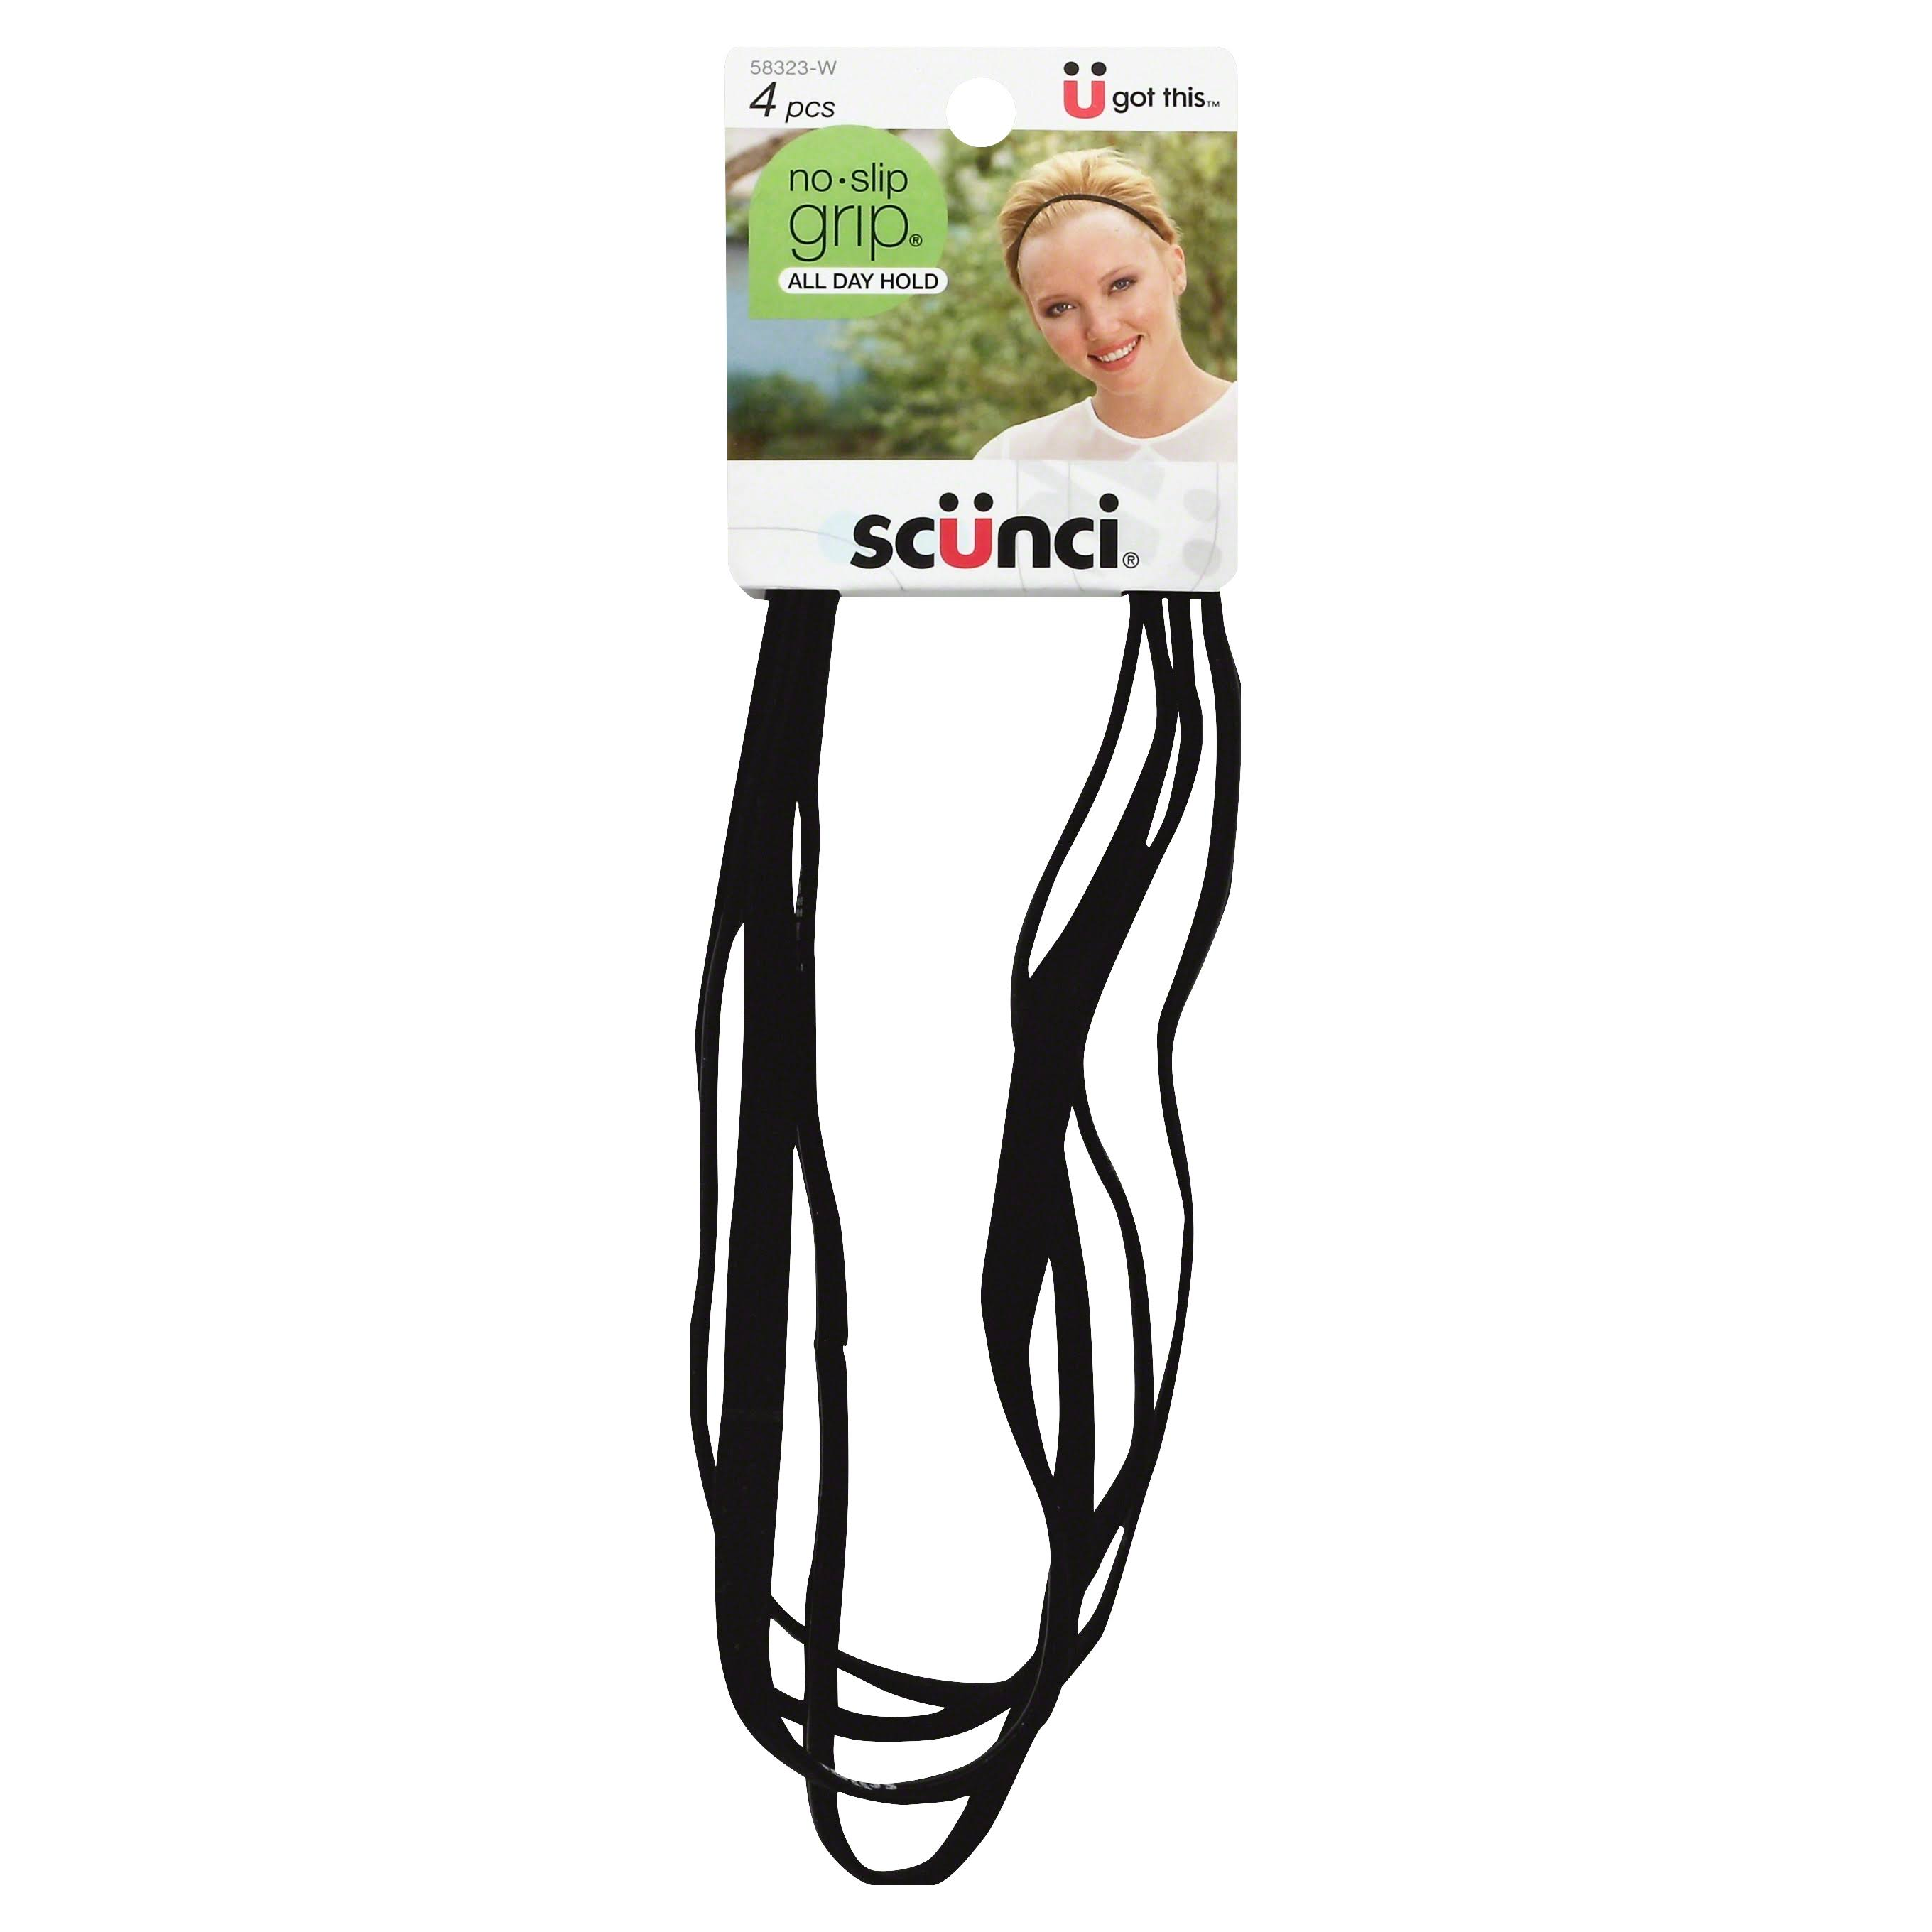 Scunci No-Slip Grip Flat Headwraps - Black